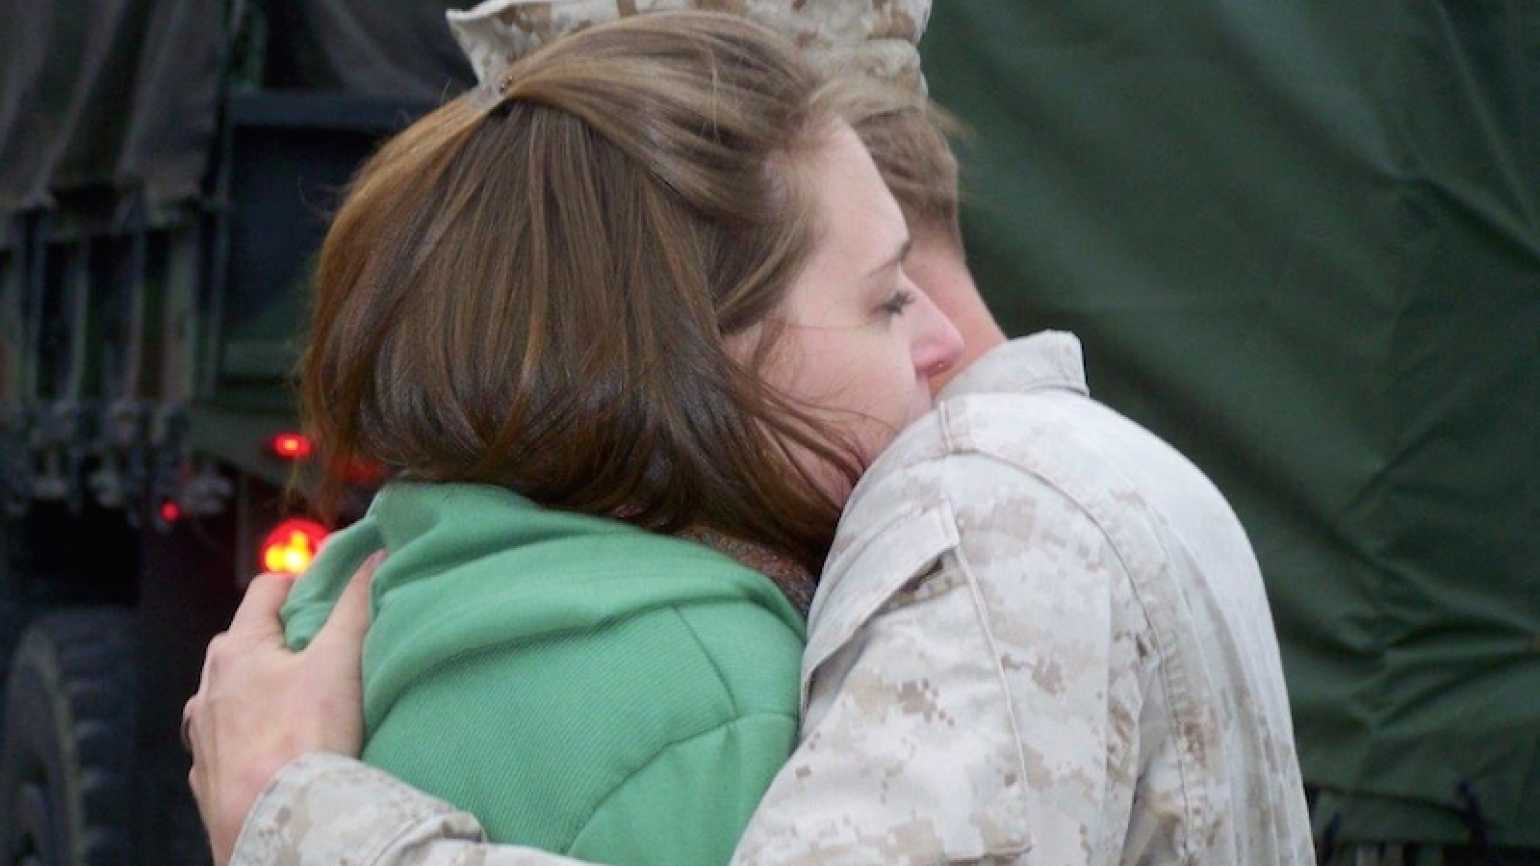 Edie's Marine Corps son hugging his wife before he's deployed